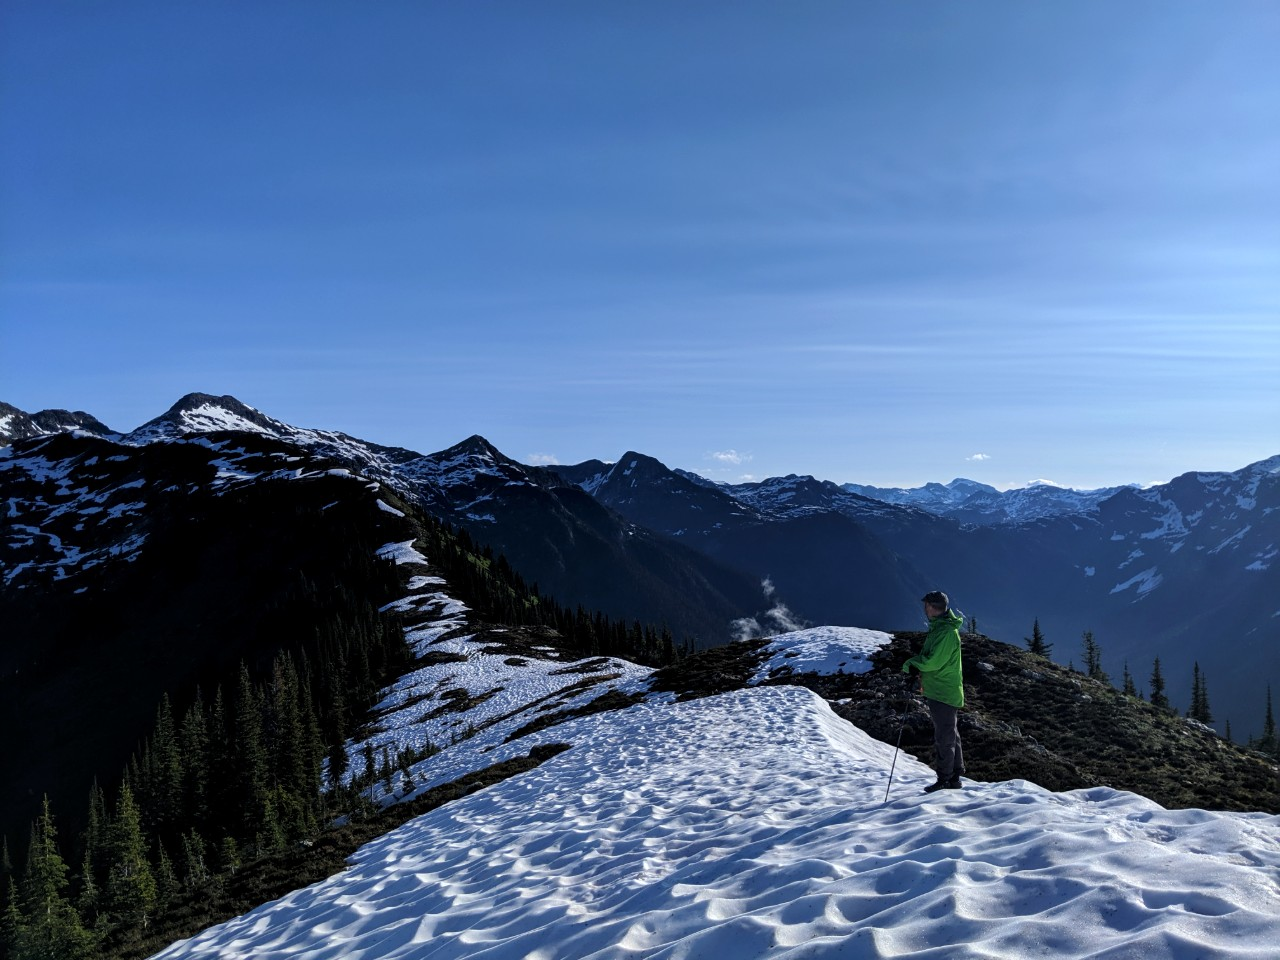 JR standing on snowy mountain ridge looking towards surrounding mountains